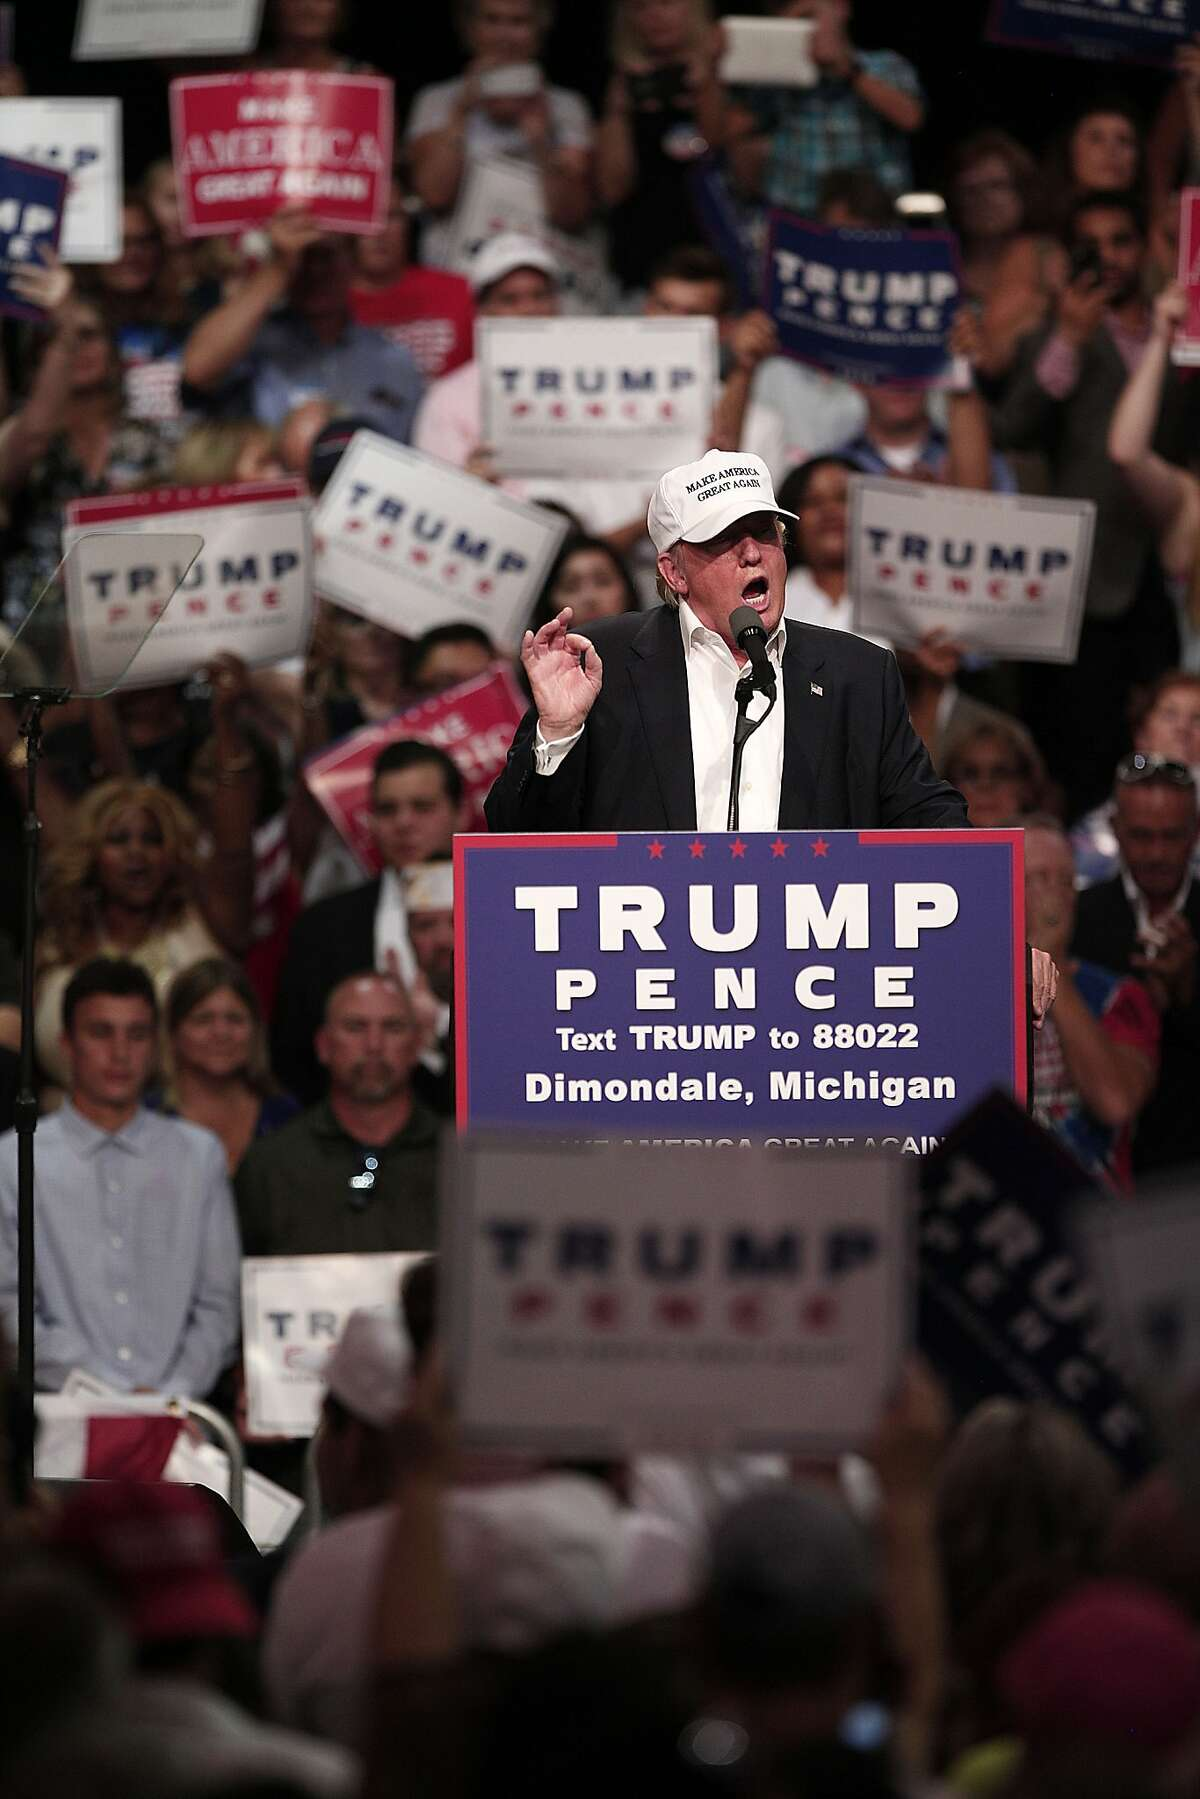 DIMONDALE, MI - AUGUST 19: Republican presidential nominee Donald Trump speaks at a campaign rally August 19, 2016 in Dimondale, Michigan. Earlier in the day, Trump toured flood-ravaged Louisiana. (Photo by Bill Pugliano/Getty Images)